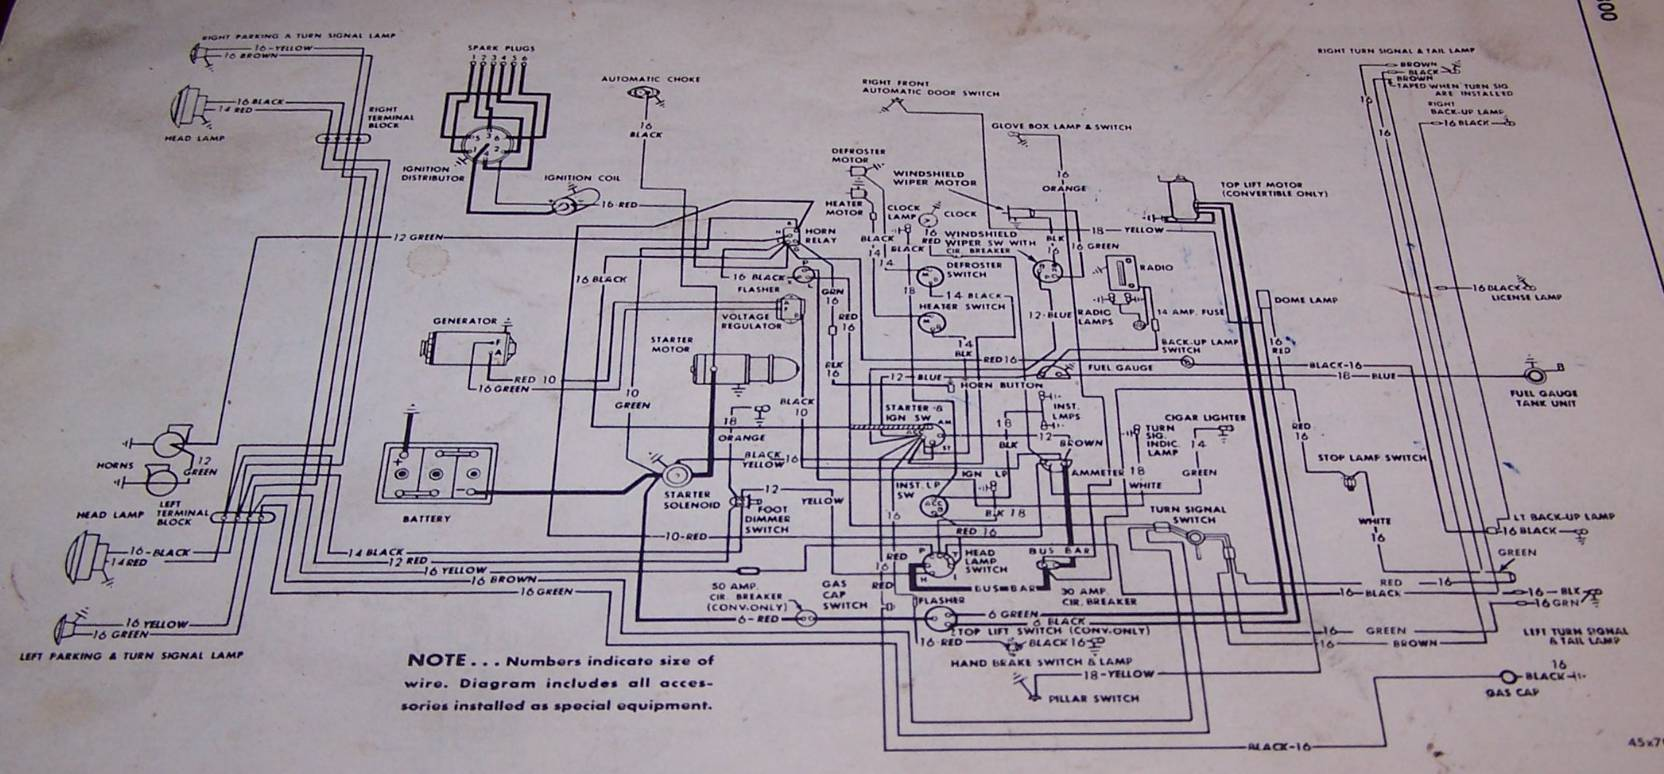 1947 Chrysler Windsor Wiring Schematic Reinvent Your Diagram 05 300 Ignition 49 Plymouth Data U2022 Rh Masterlimobc Com 2005 Schematics